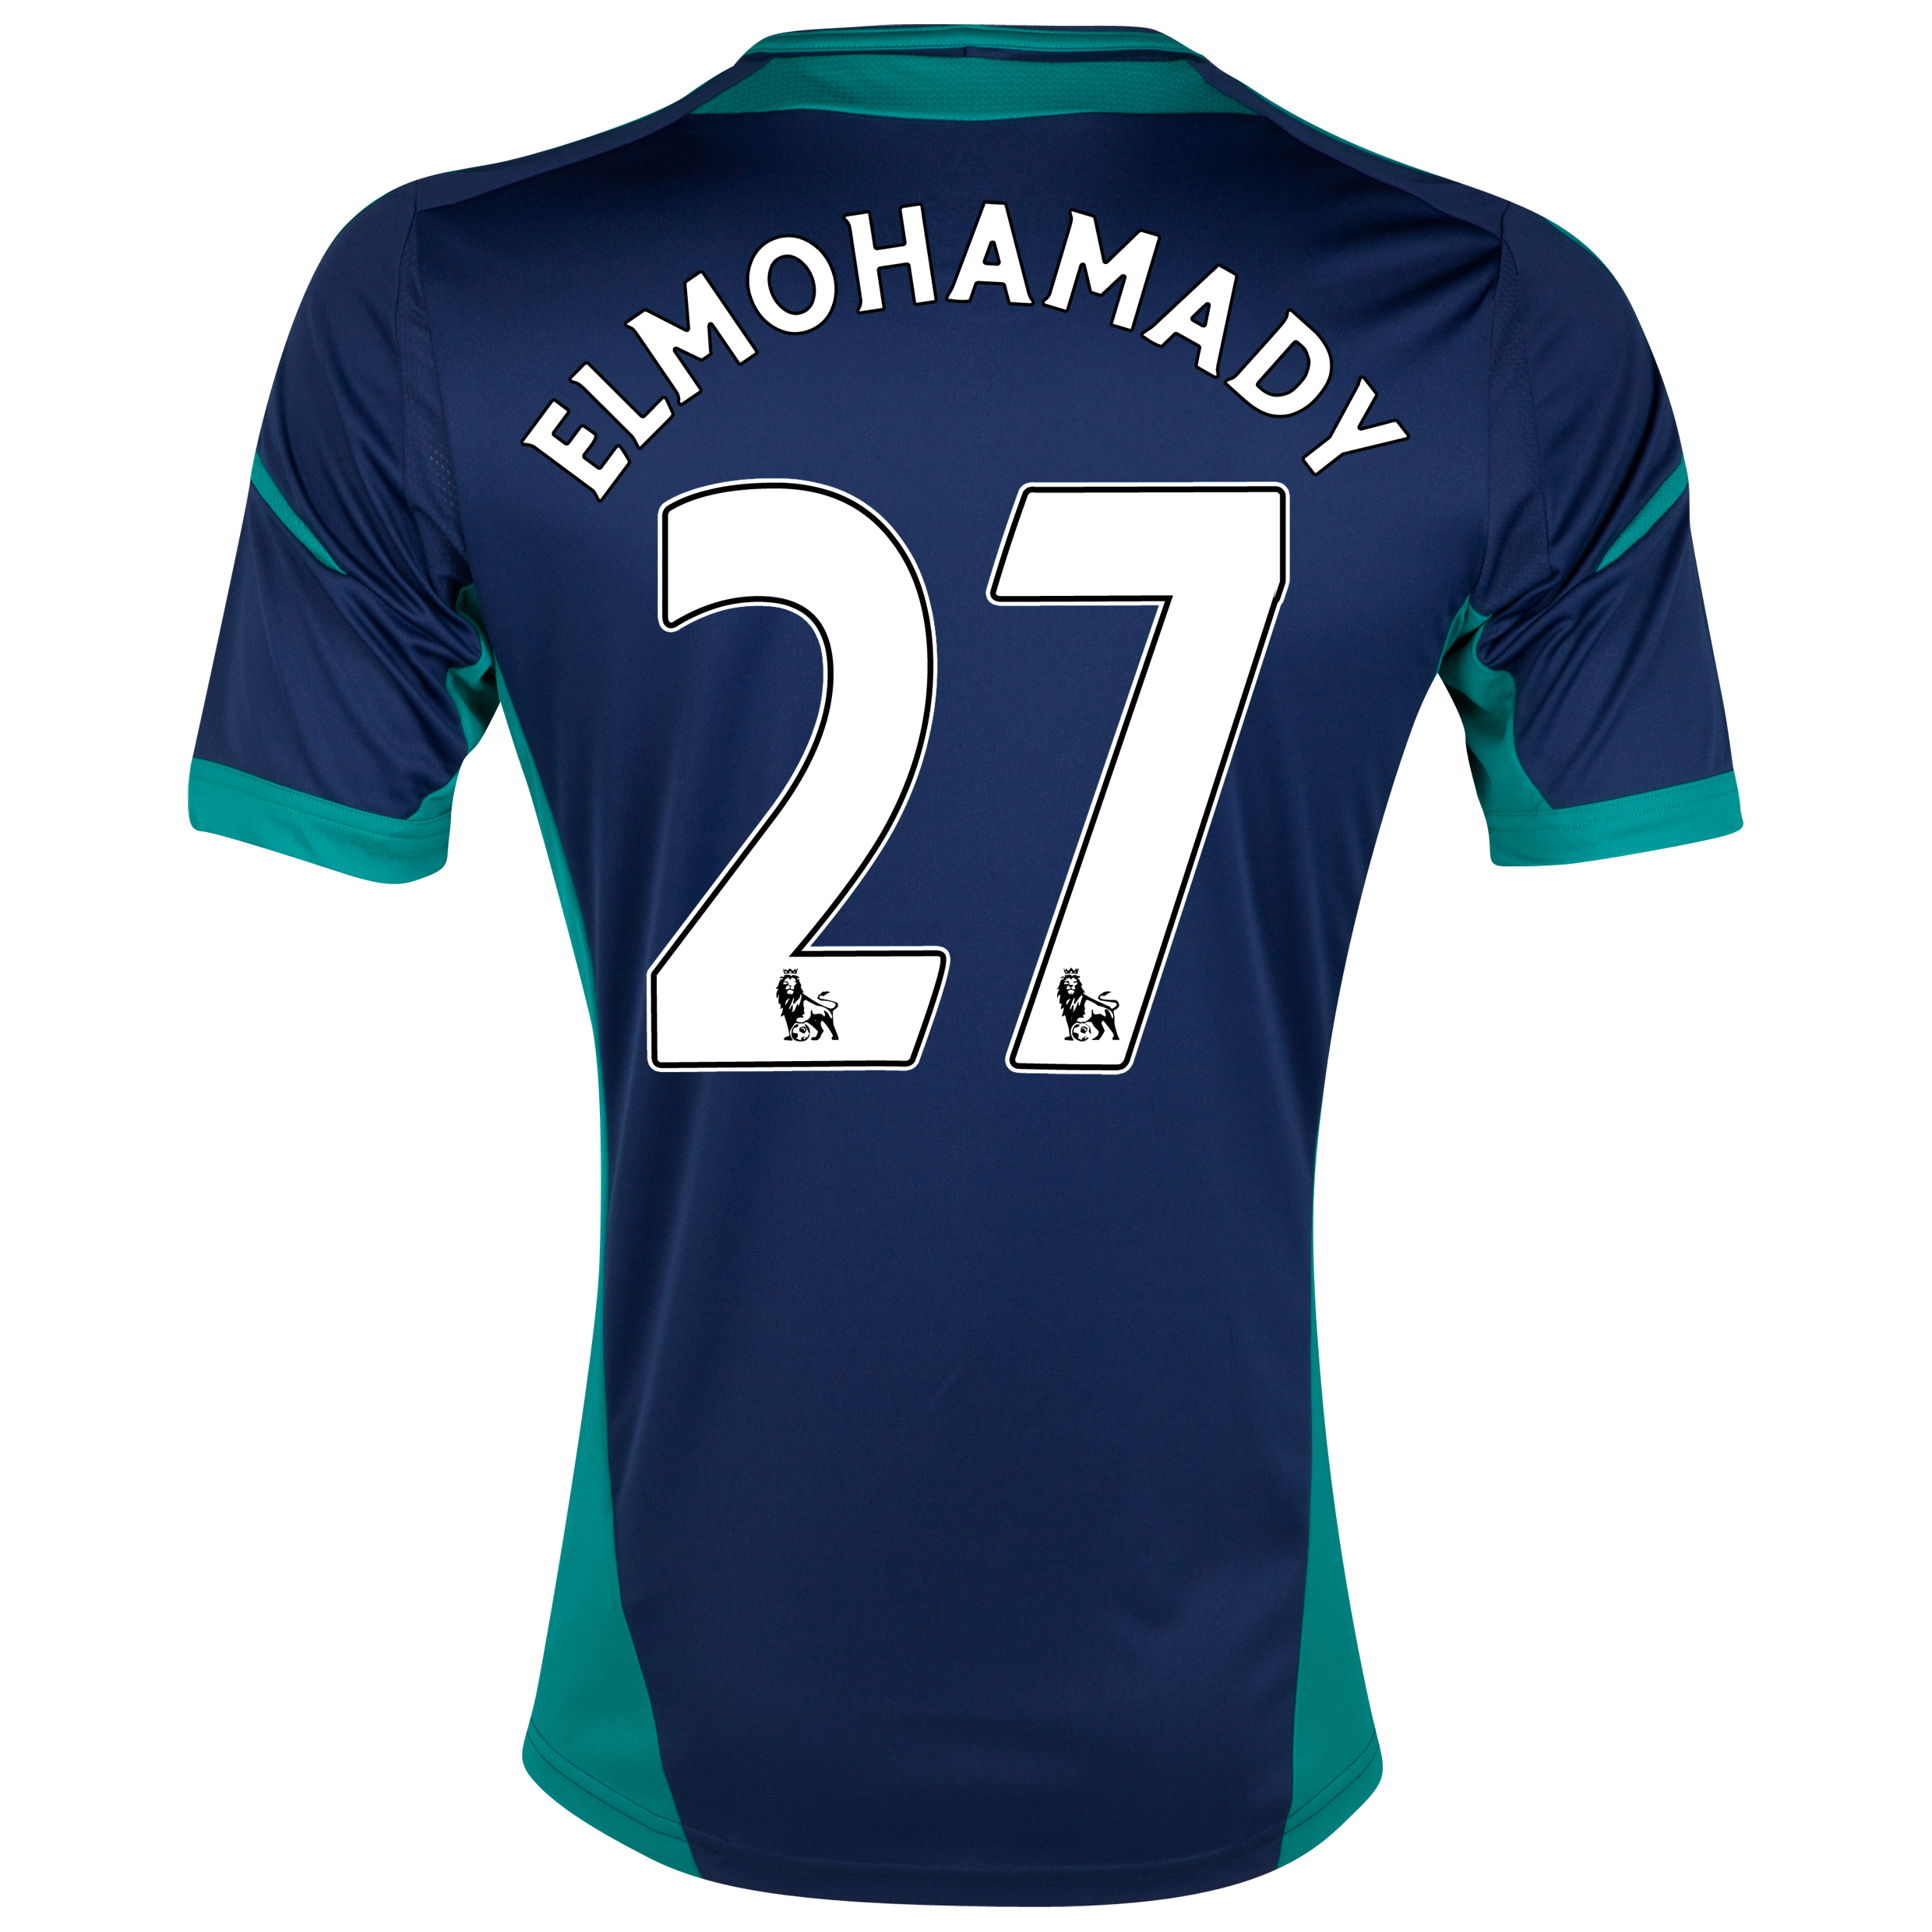 Sunderland Away Shirt 2012/13 - Junior with Elmohamady 27 printing